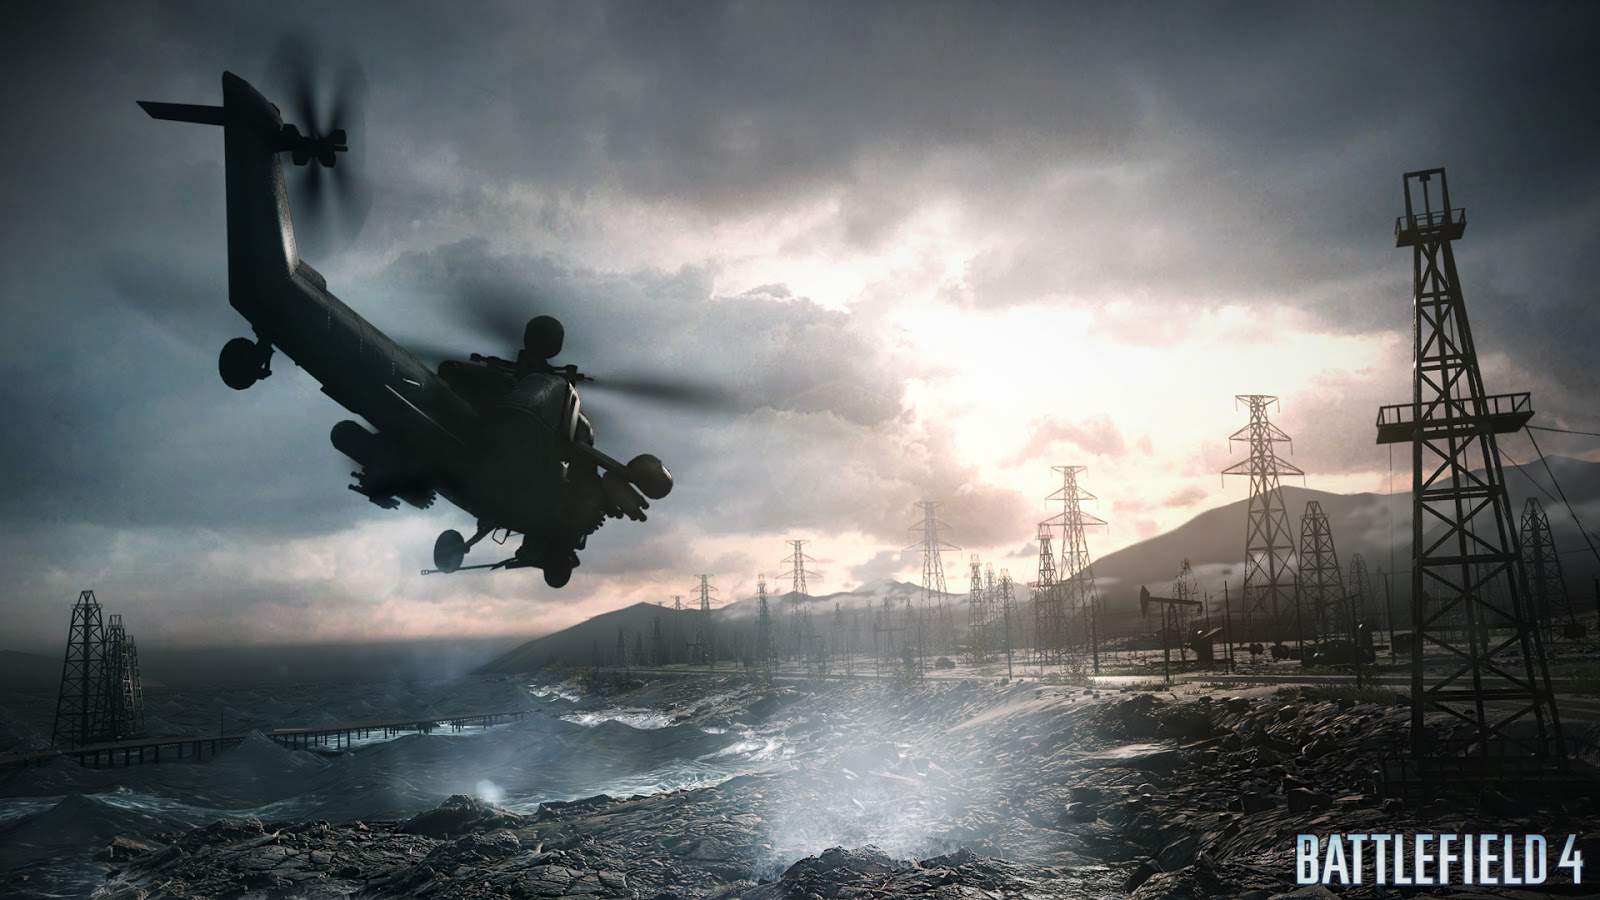 battlefield 4 wallpaper screenshots game hd desktop